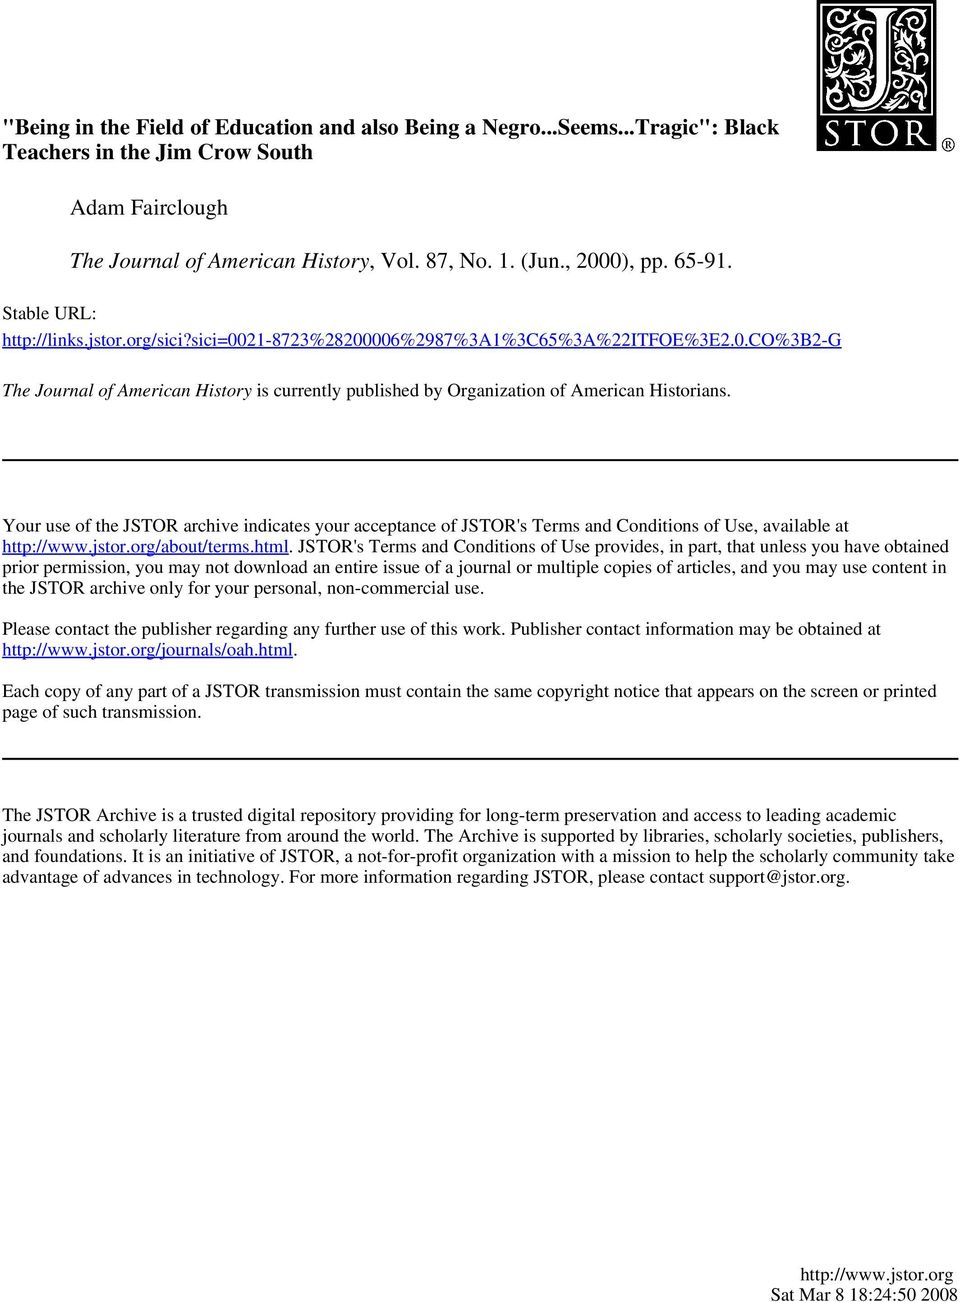 Your use of the JSTOR archive indicates your acceptance of JSTOR's Terms and Conditions of Use, available at http://www.jstor.org/about/terms.html.